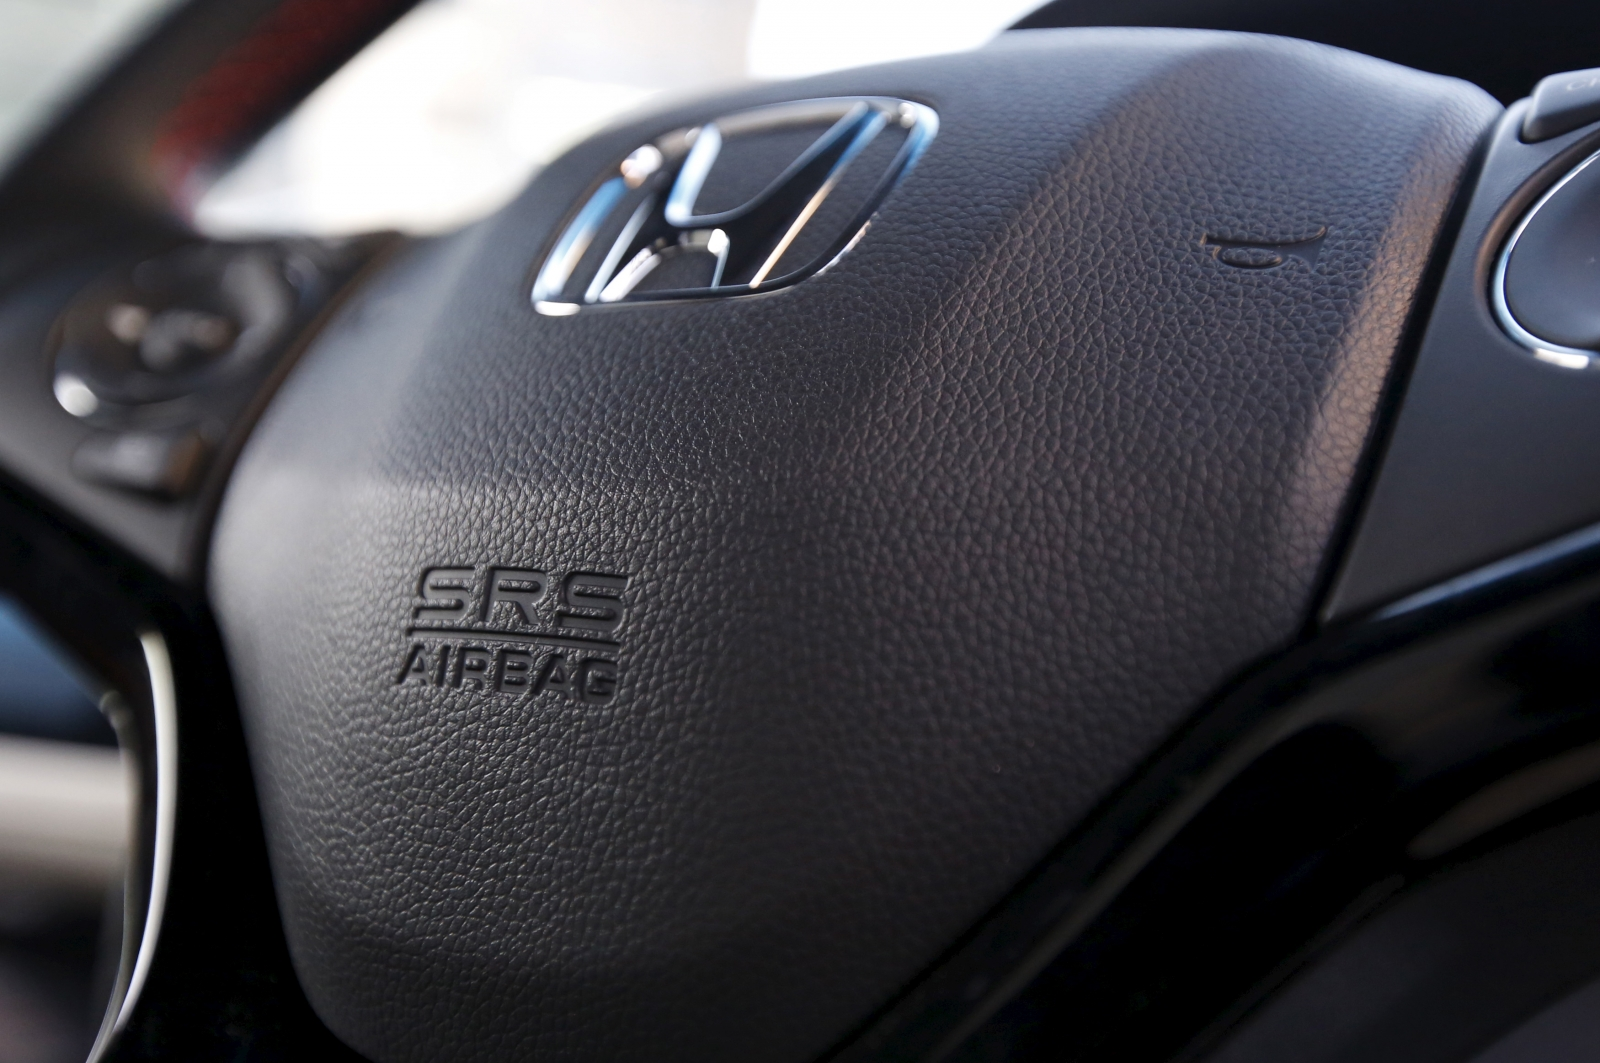 Honda recalls 668,000 cars in Japan across 16 models over defective Takata air bags